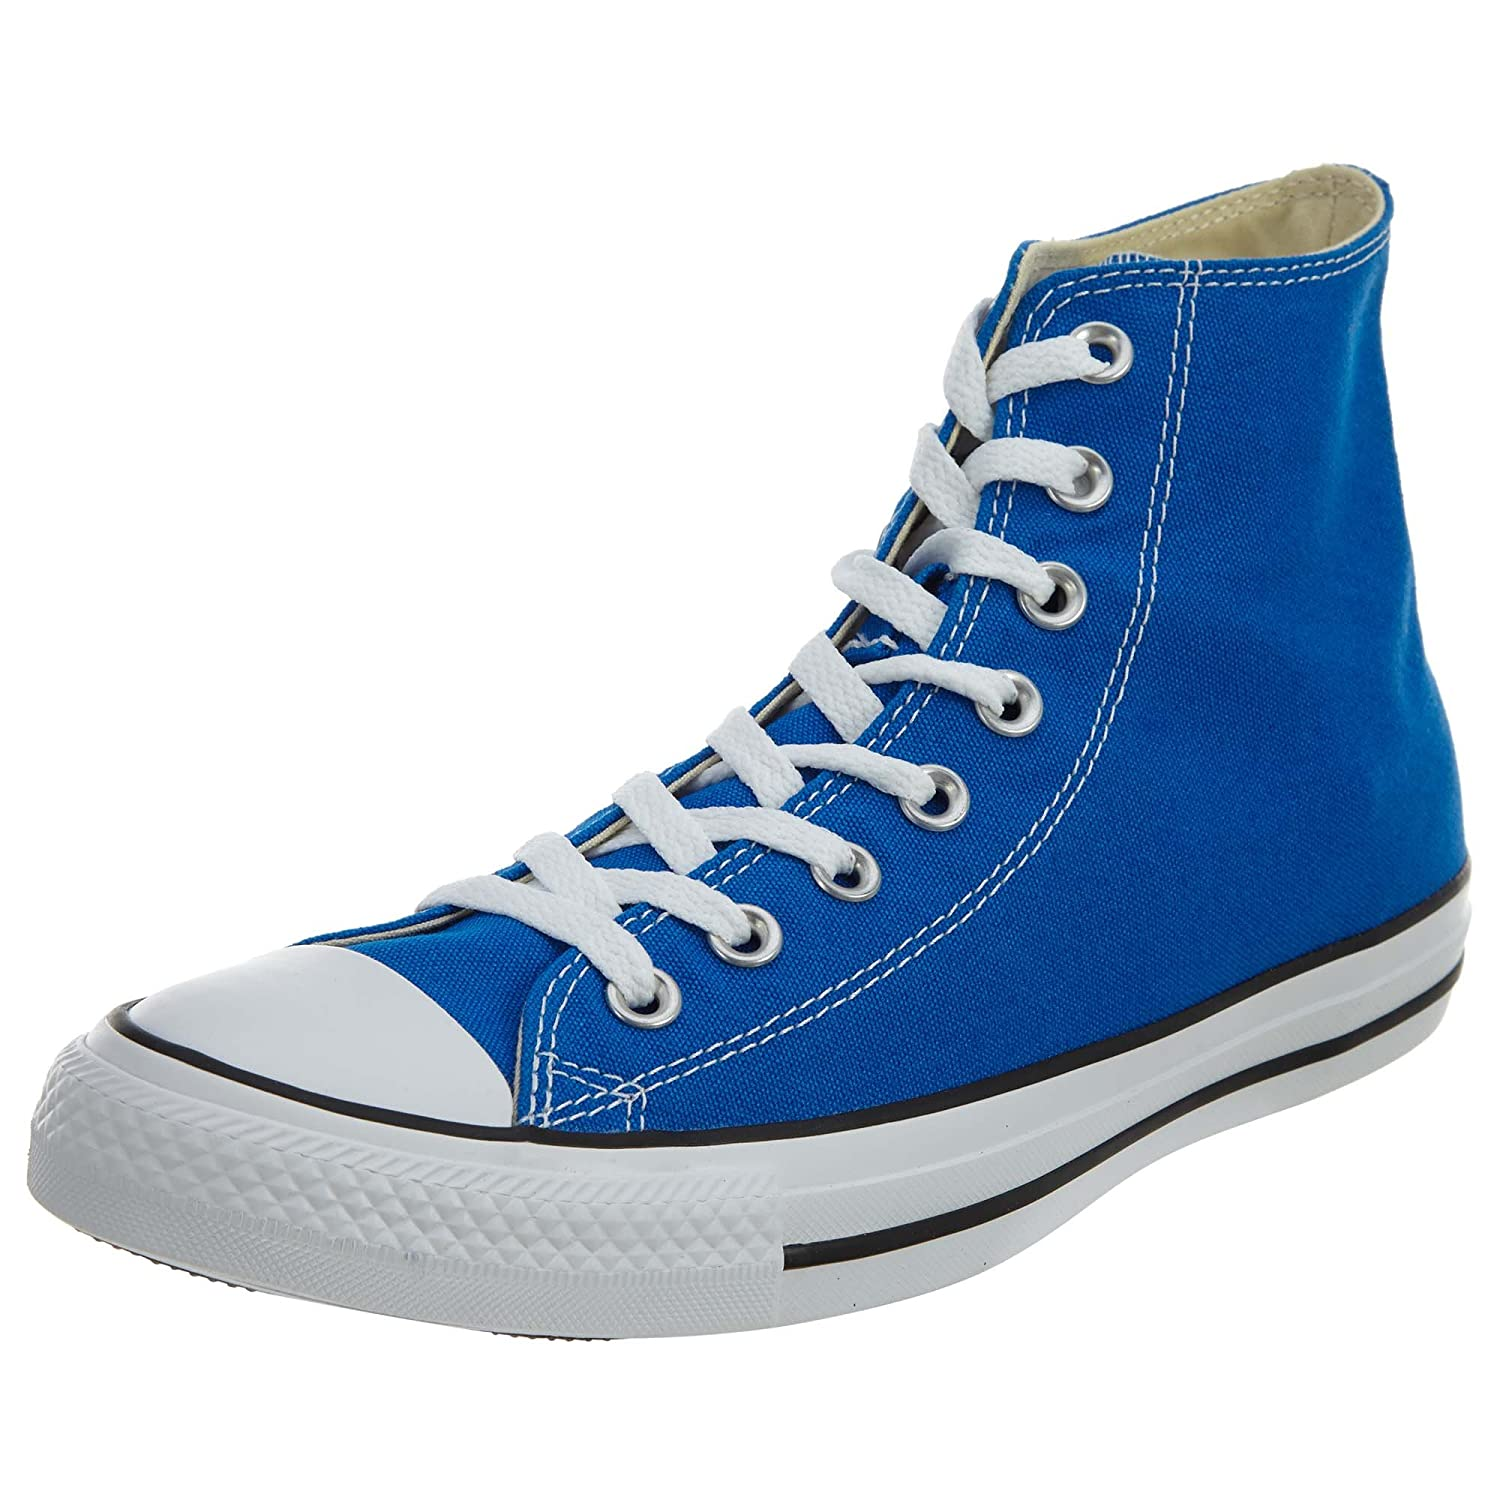 Converse Chuck Taylor All Star Core Hi B01HSIHTXC 11.5 B(M) US Women / 9.5 D(M) US|Soar Blue